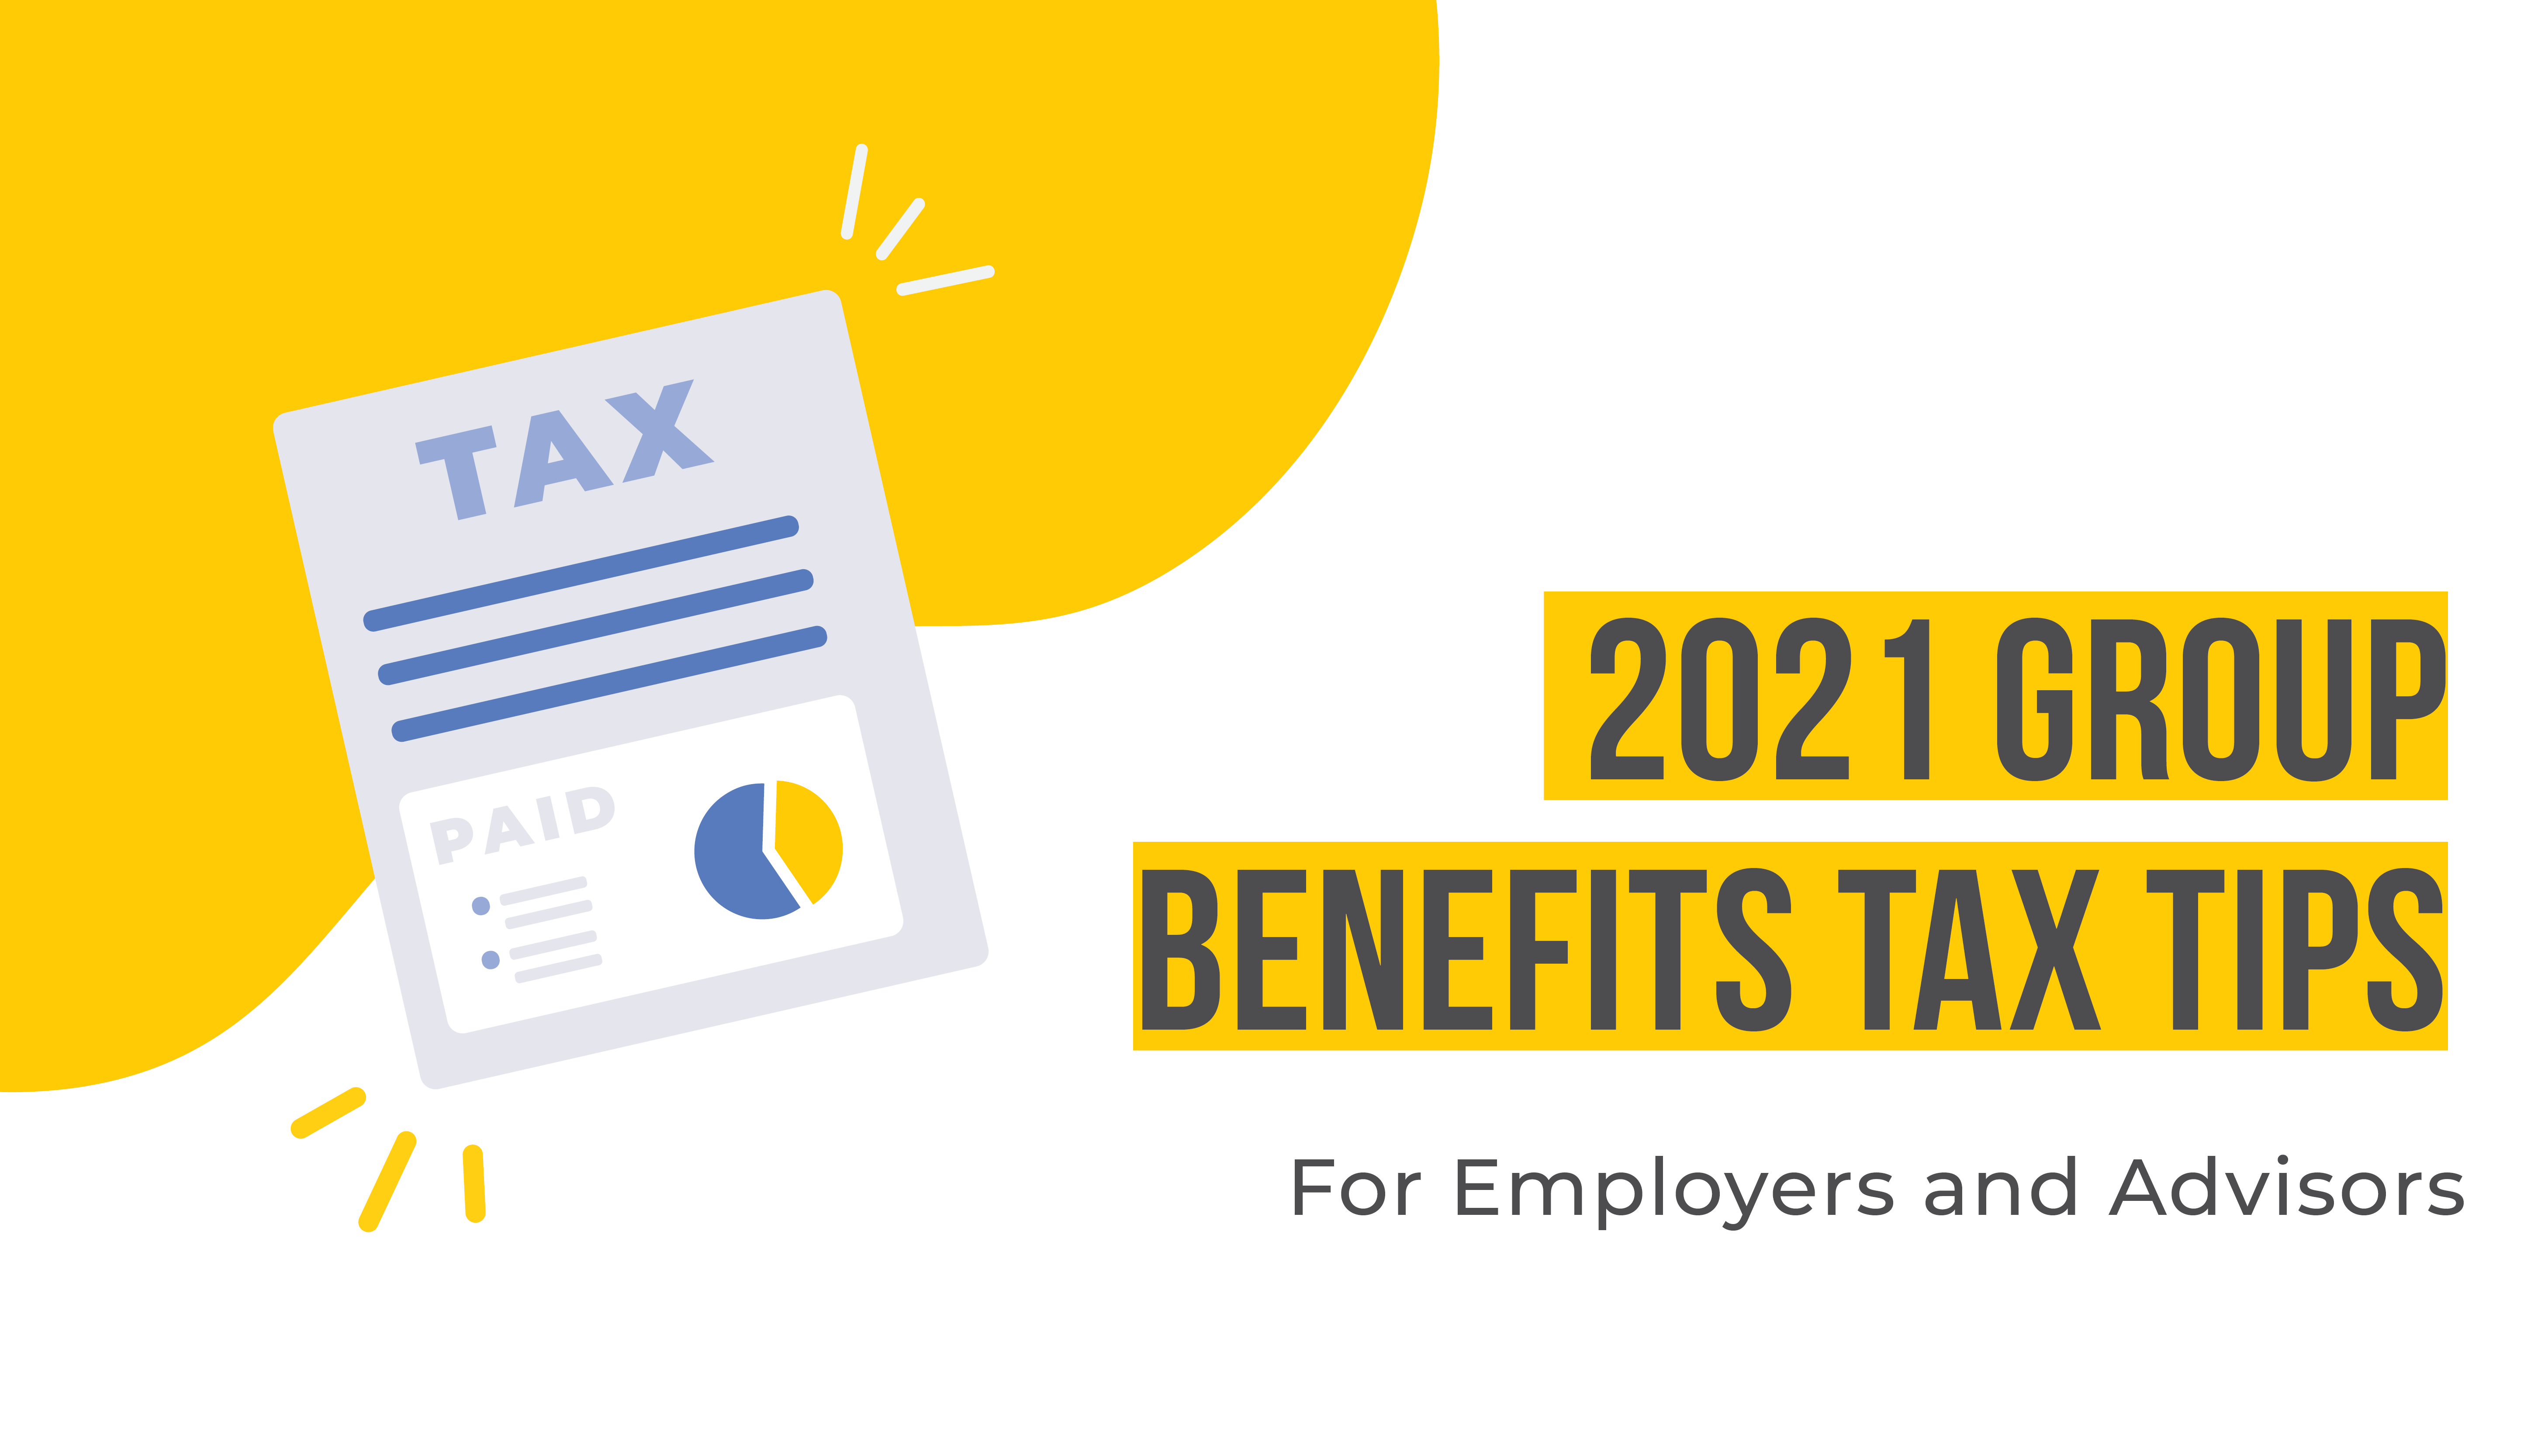 2021 Group Benefits Tax Tips for Employers and Advisors | Benefits by Design